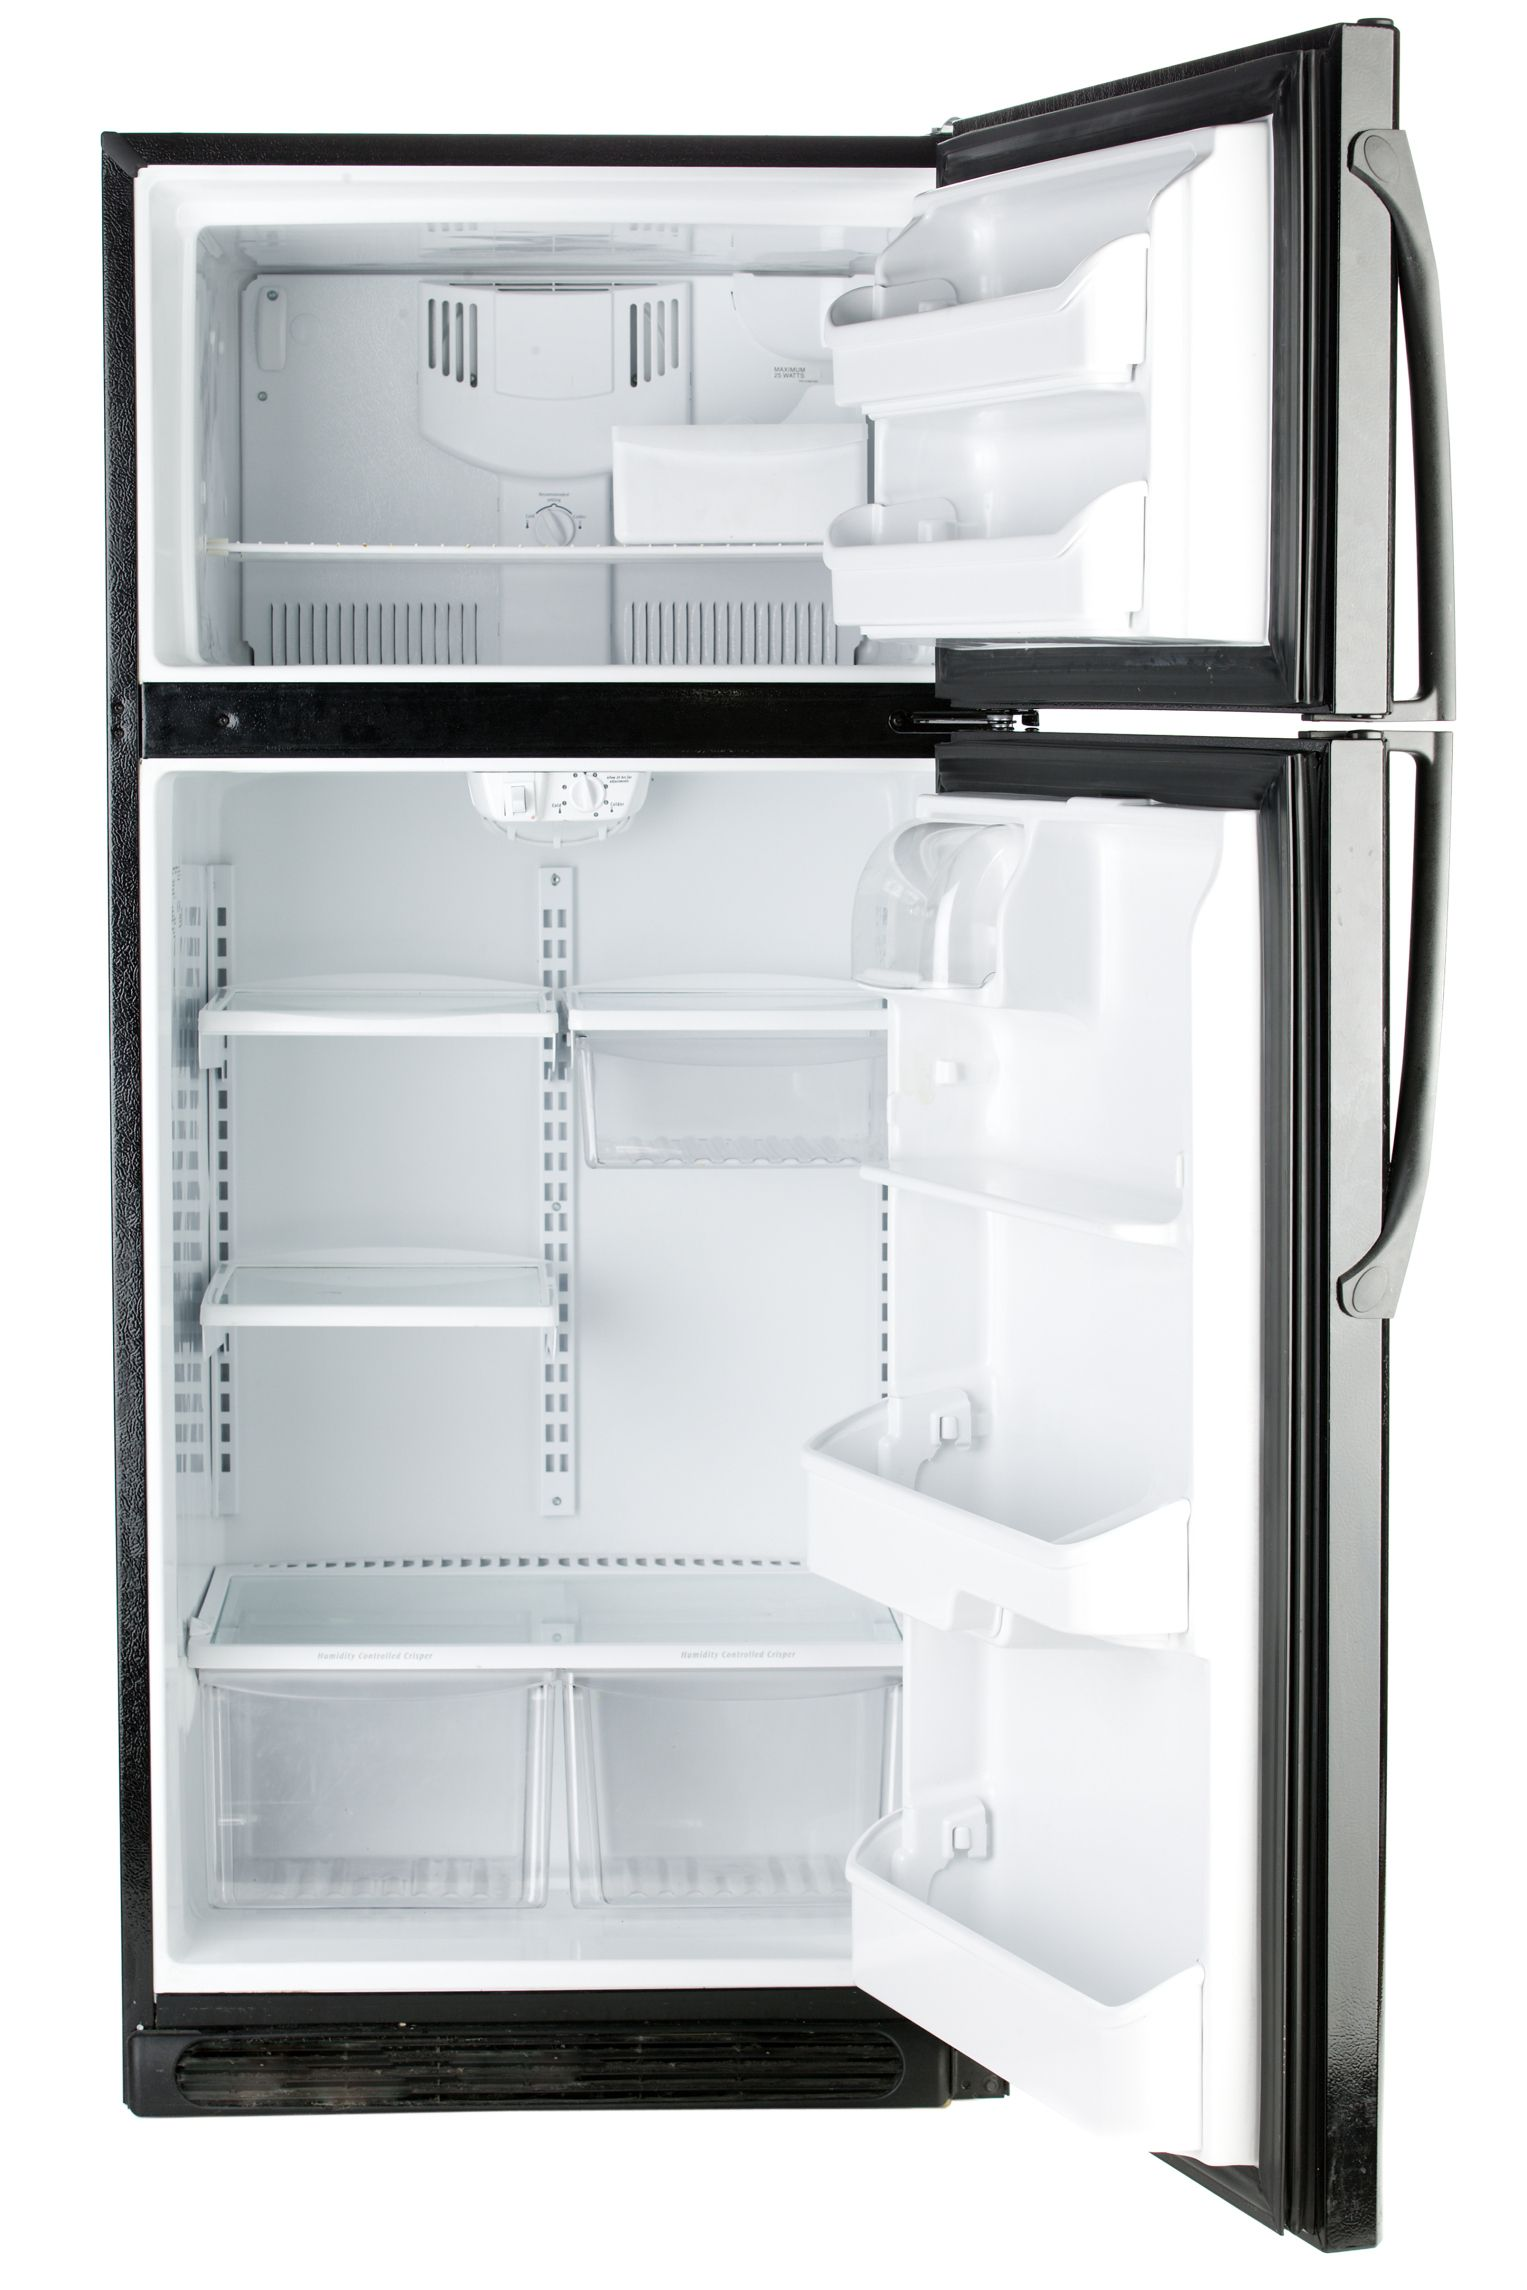 Both Refrigerators And Freezers Are Cooled By Refrigerant Smelly Refrigerator Fridge Smells Clean Fridge